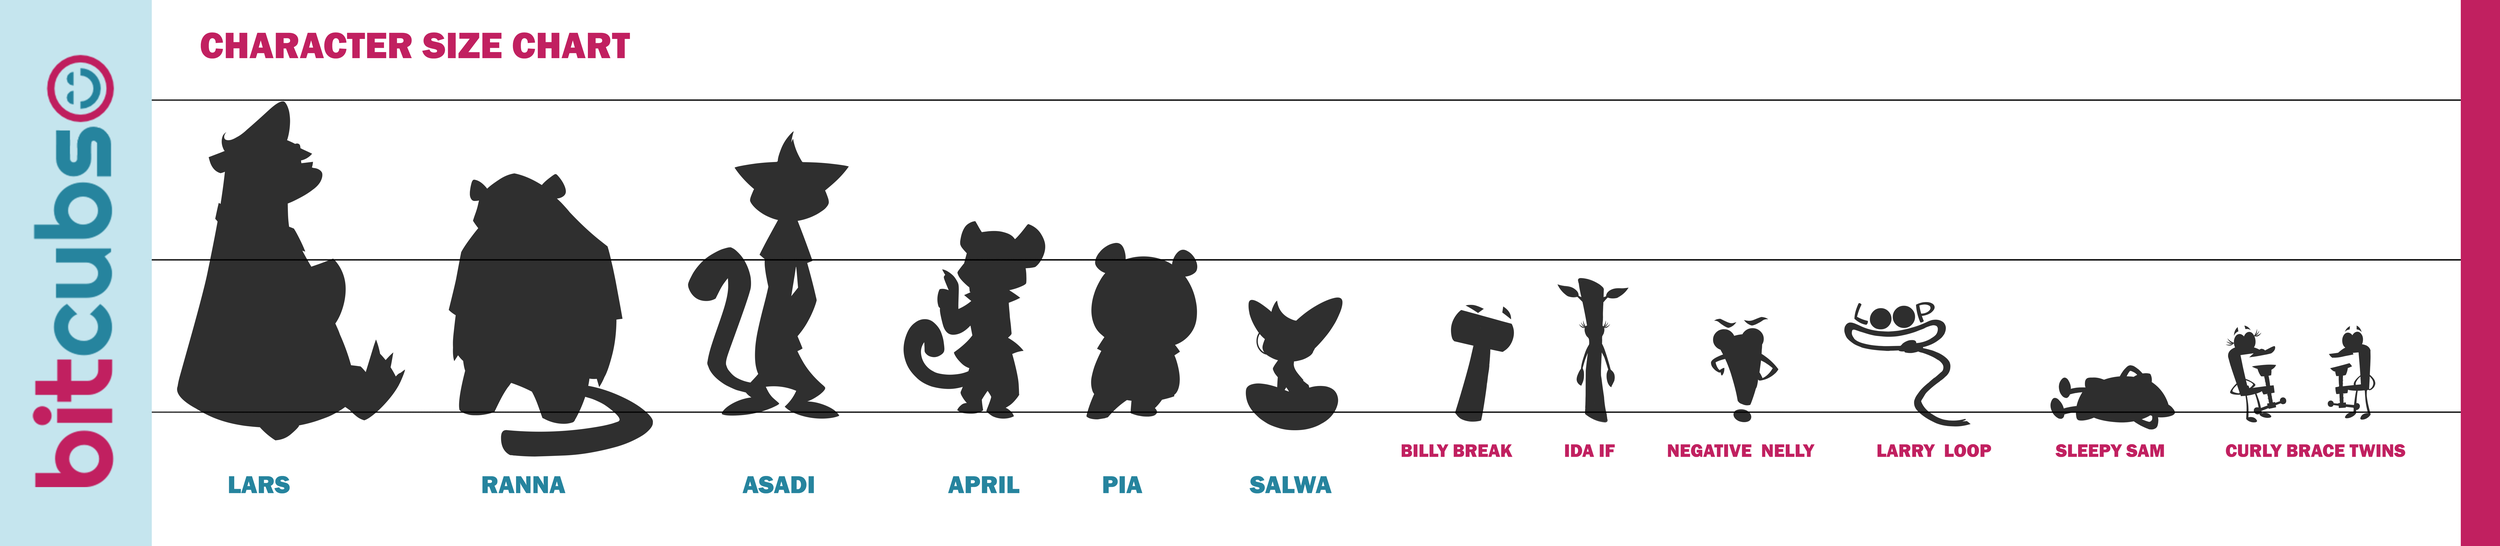 Size Chart 02.png